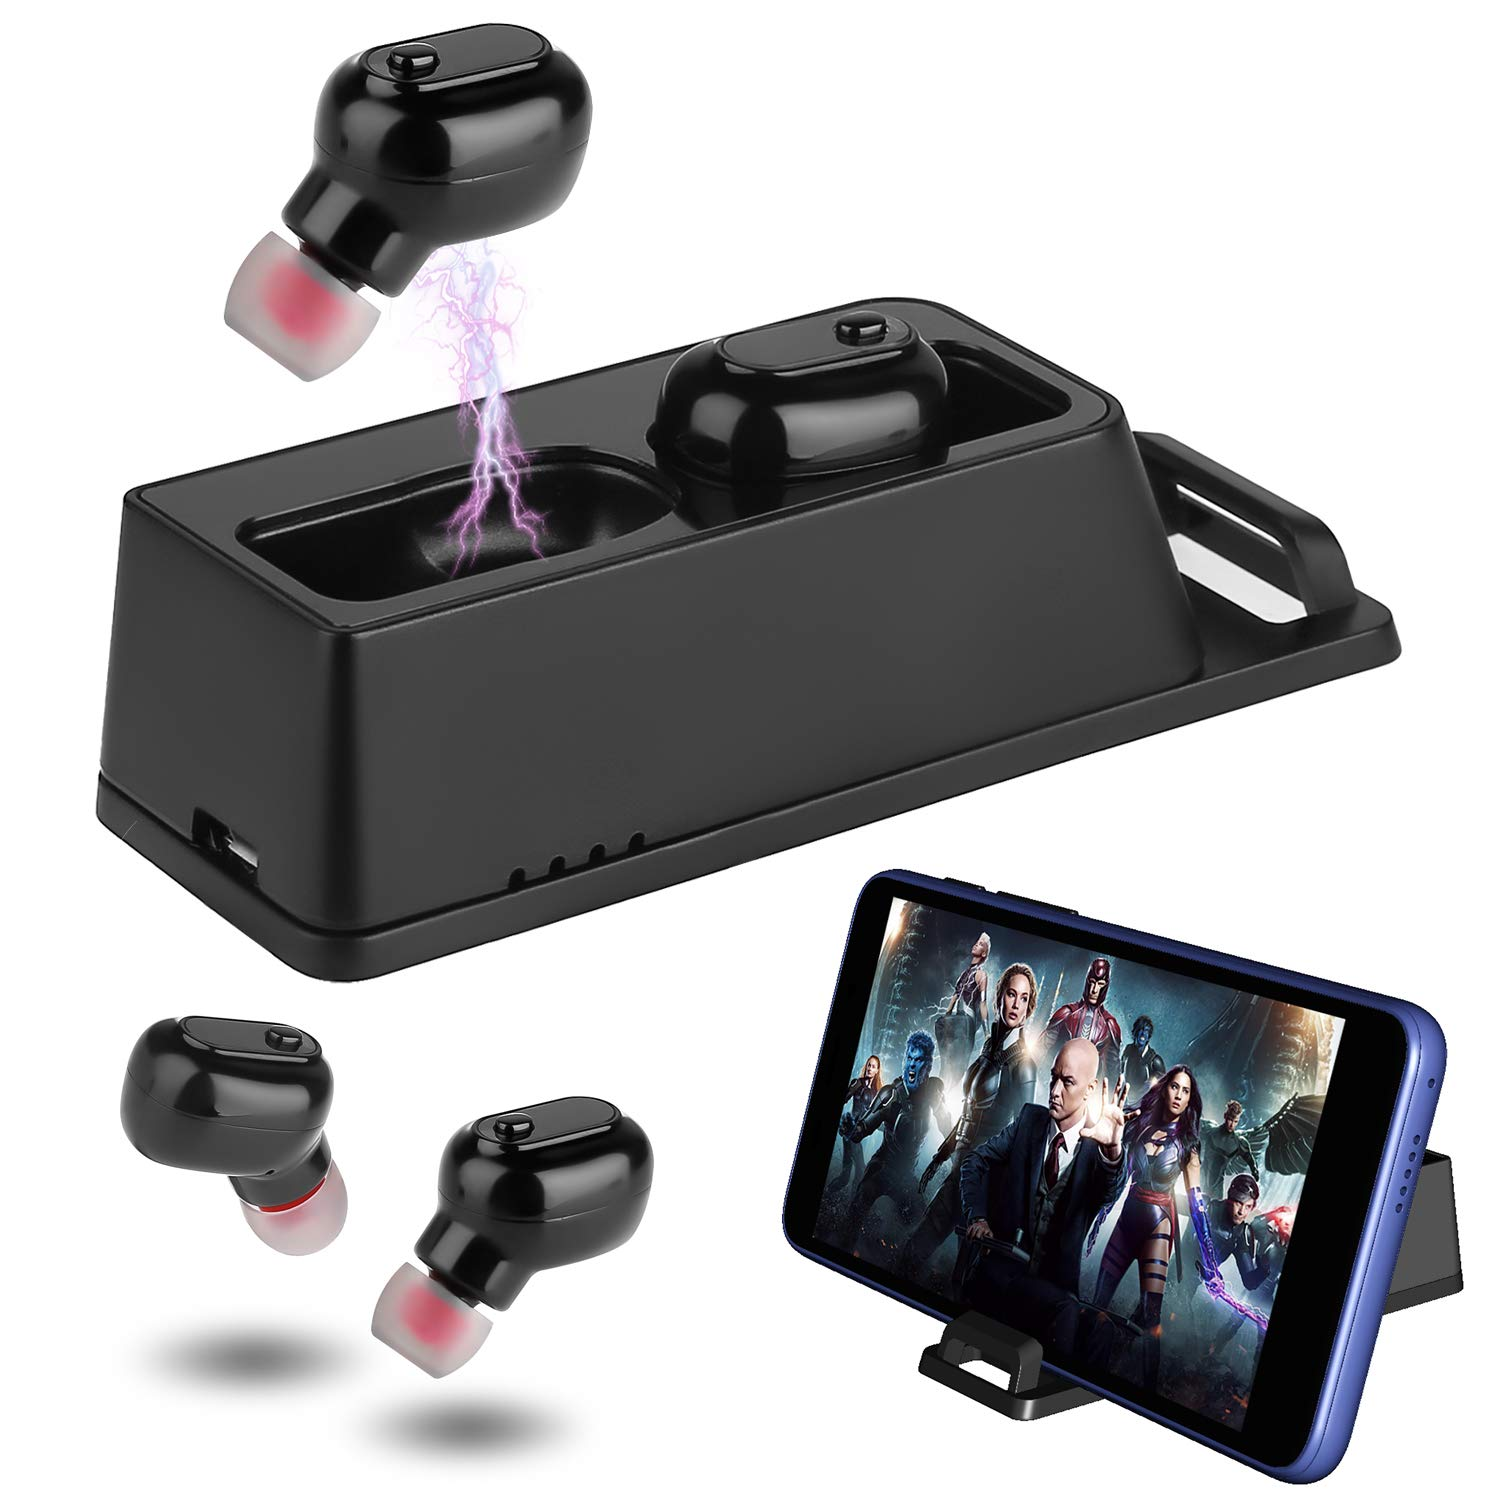 VANFINE 2 in 1 Bluetooth 5.0 TWS Earbuds Waterproof Wireless Headphones Phone Tablet Stand Wireless Charging Case Earphones Stereo Hi-Fi Sound in Mic Headset Premium Sound with Deep Bass for Sport